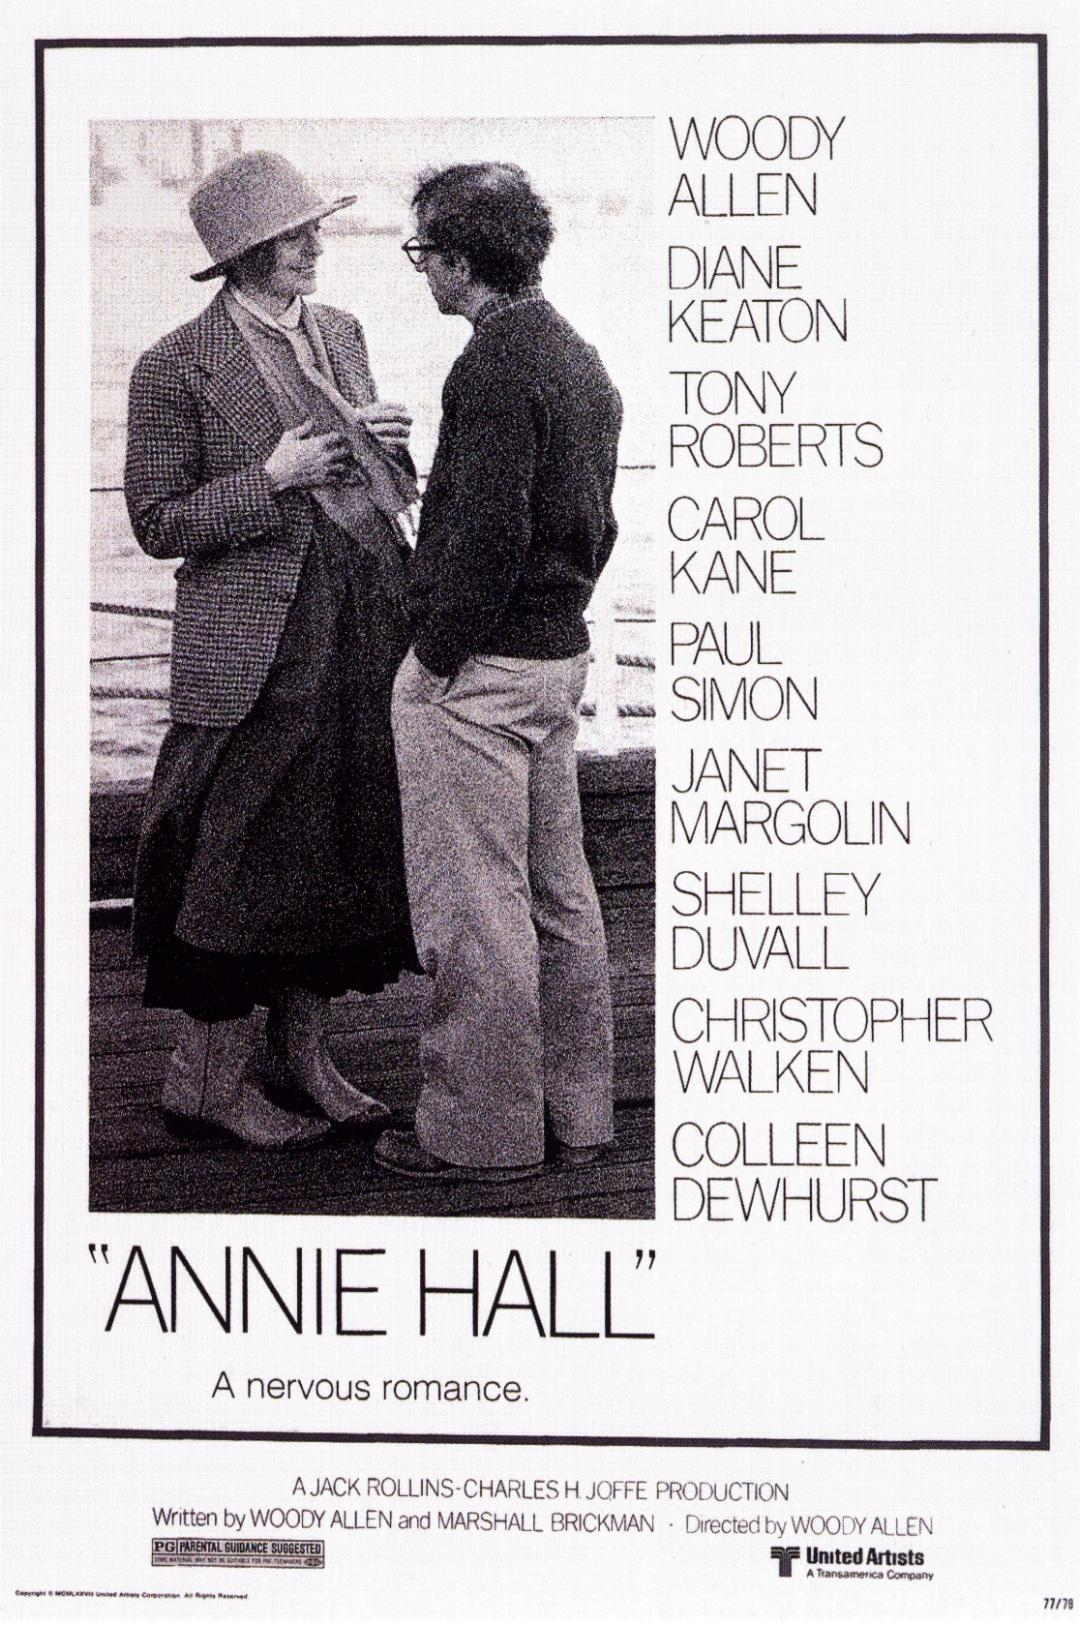 Woody Allen Annie Hall Quotes Film Gif Find Share On Giphy Eydt